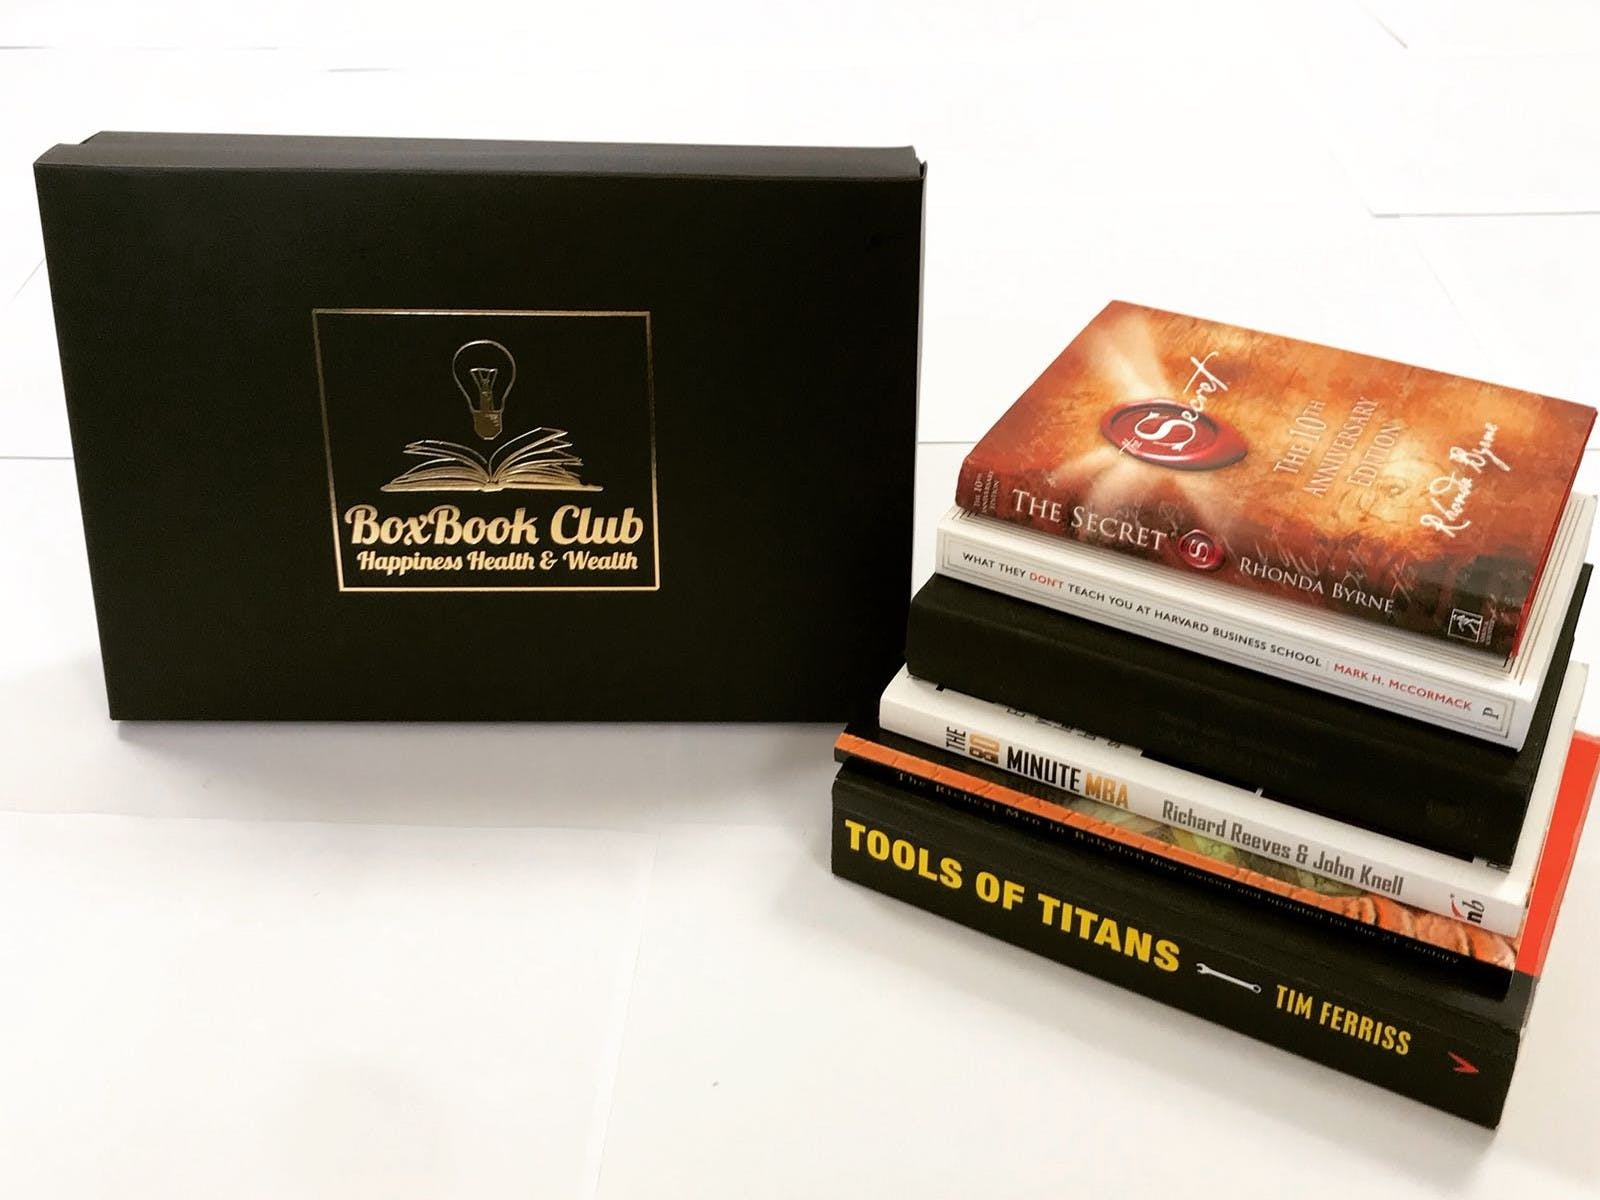 The BoxBook Club Programme